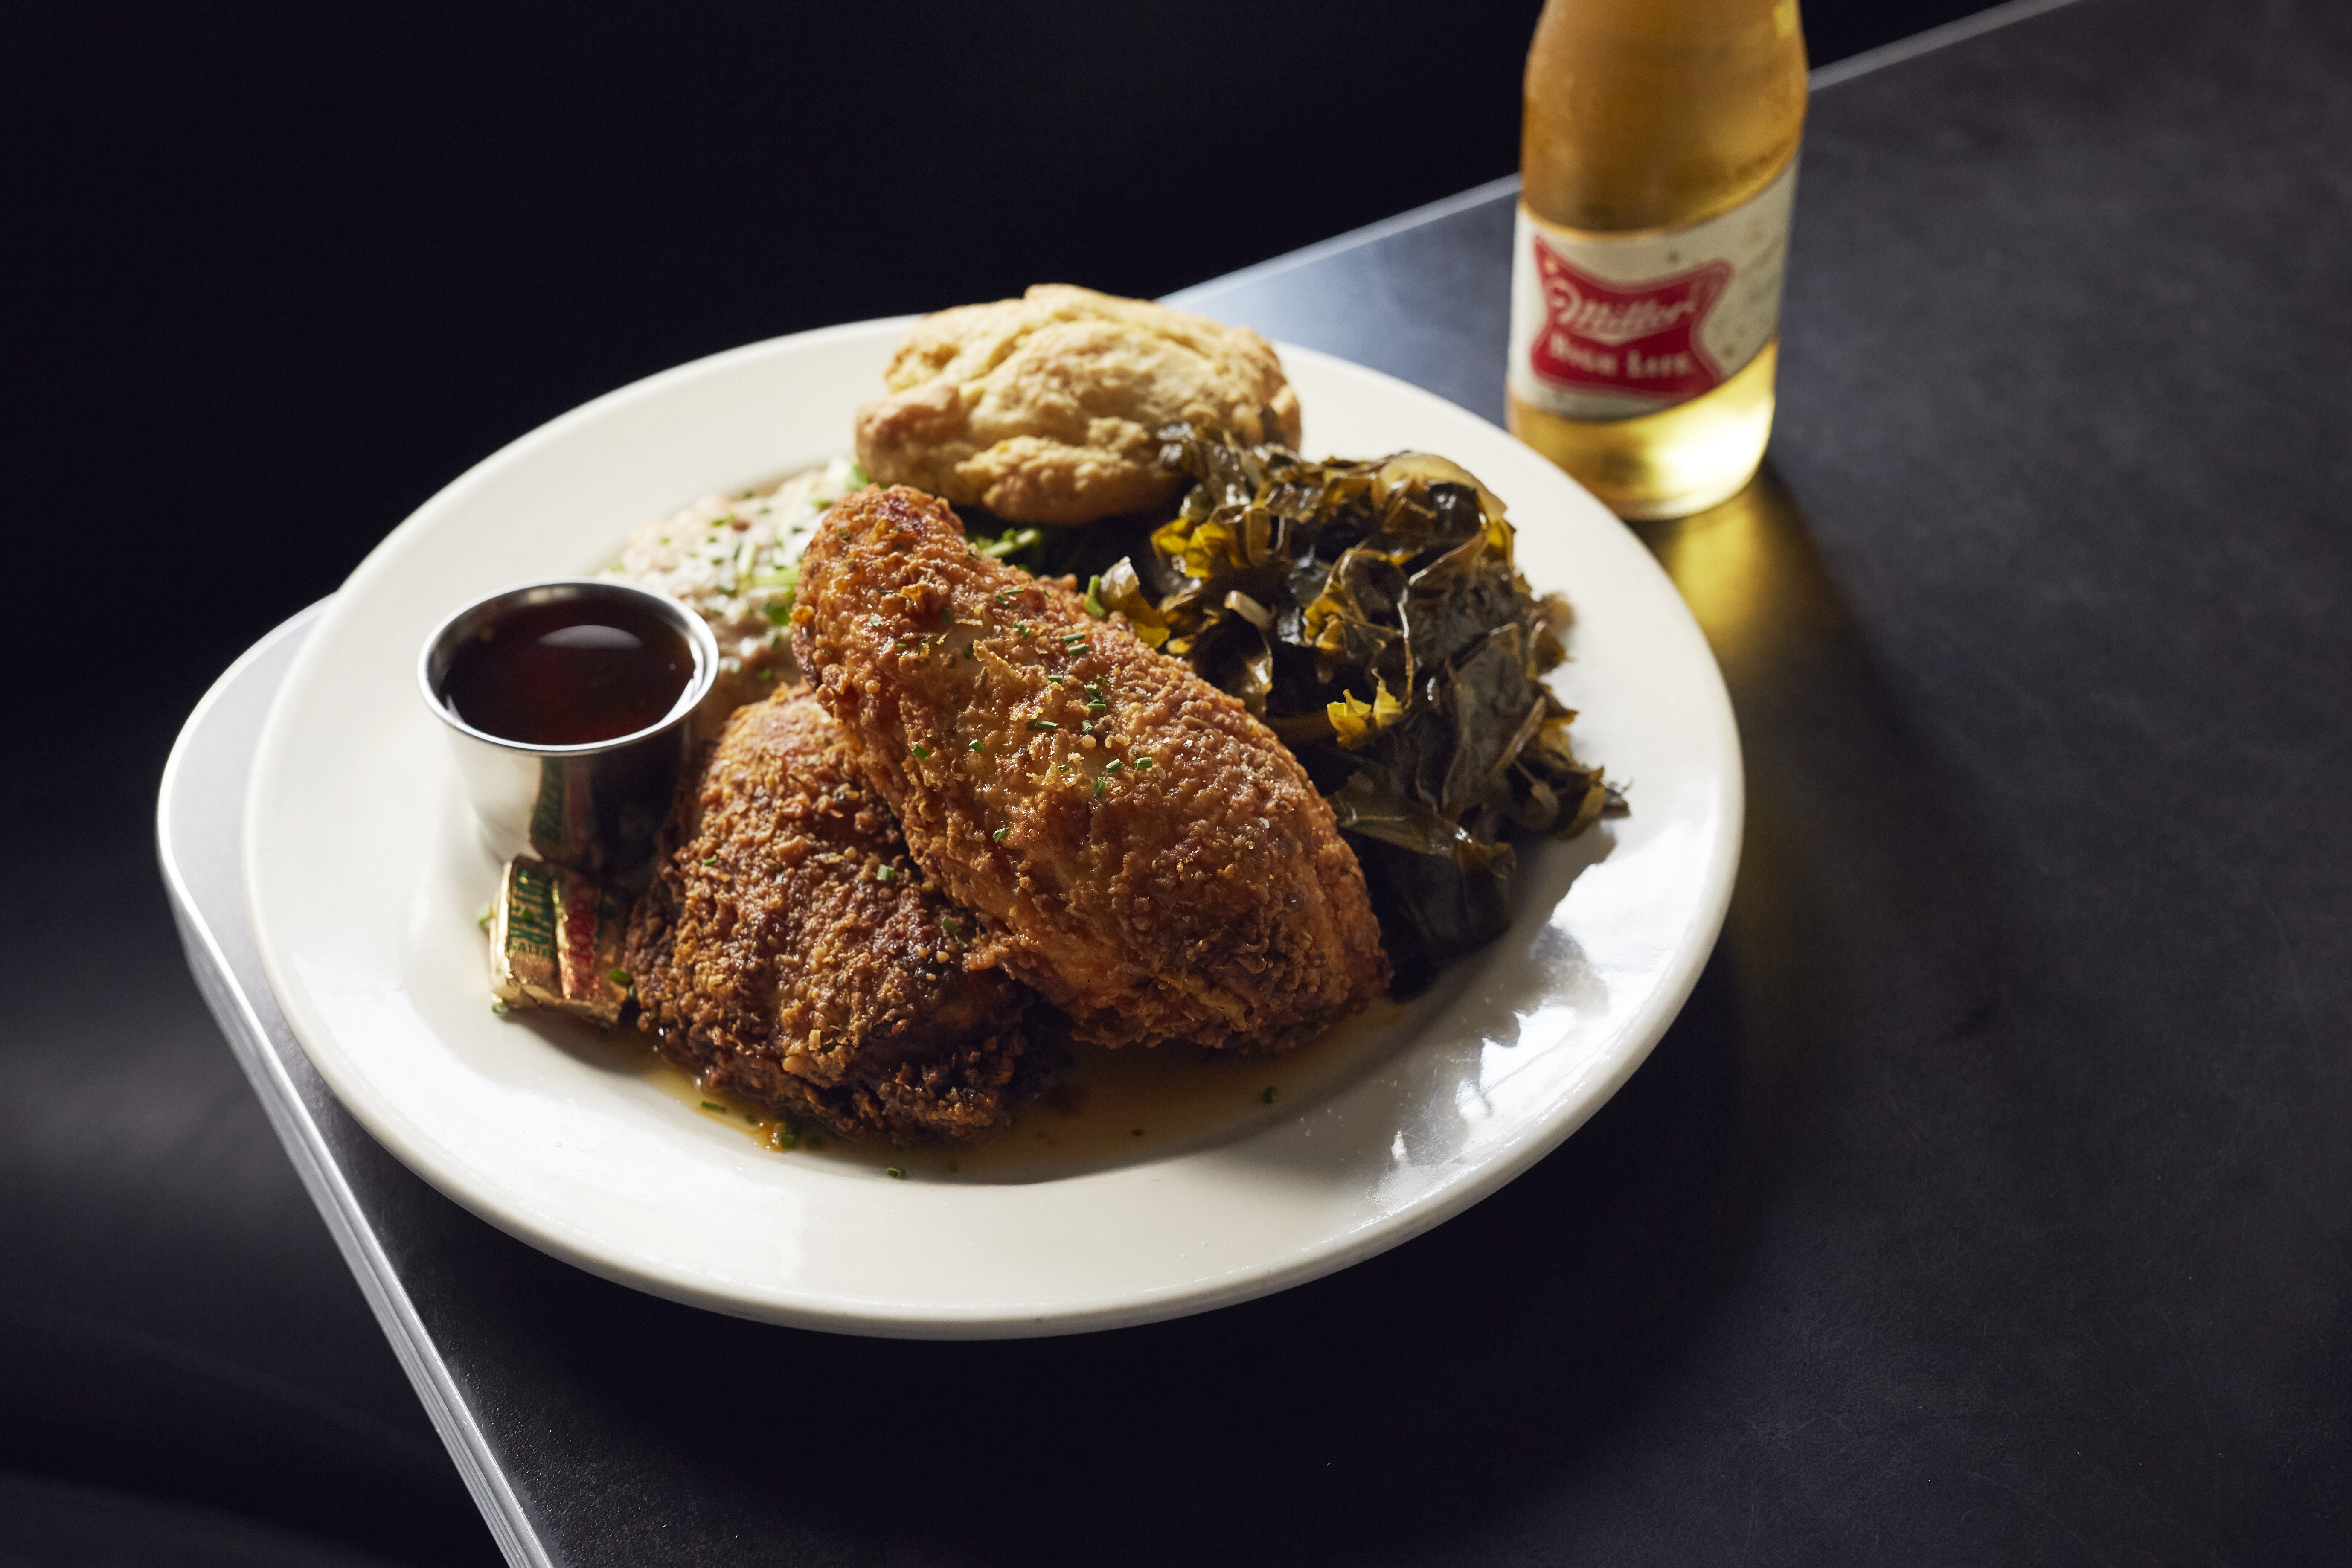 A plate of fried chicken with collard greens and a biscuit sits on a black tabletop on a black background. There's a bottle of Miller High Life to the side of the plate.